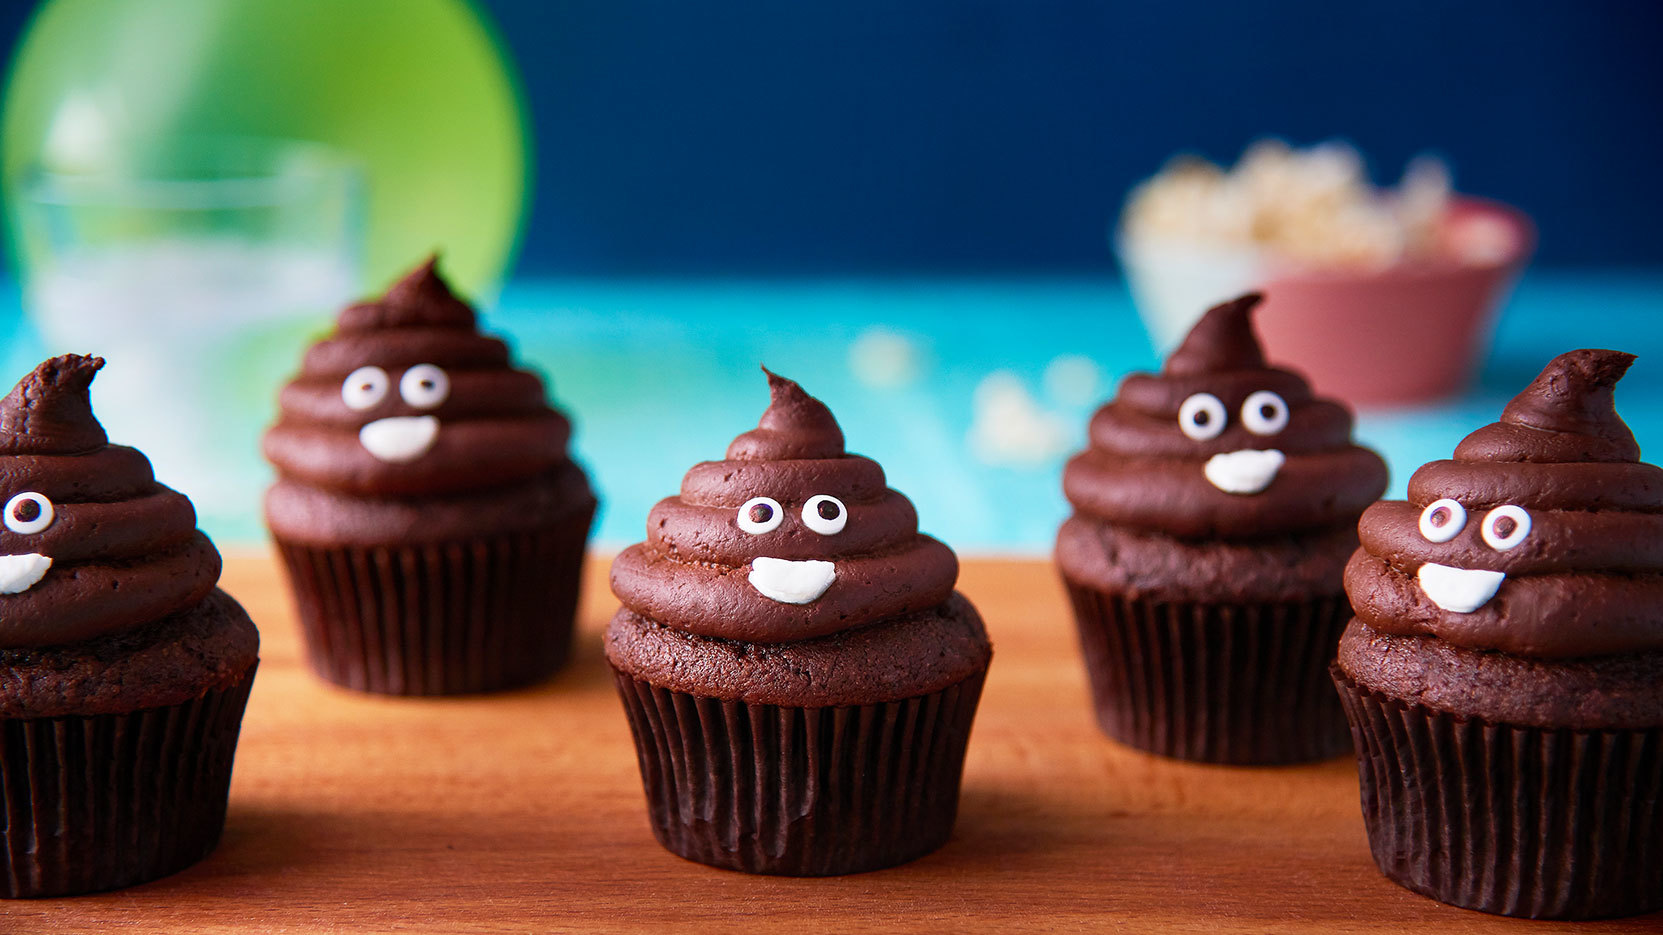 Hilarious Emoji Birthday Party Ideas for Kids That Will Make You LOL